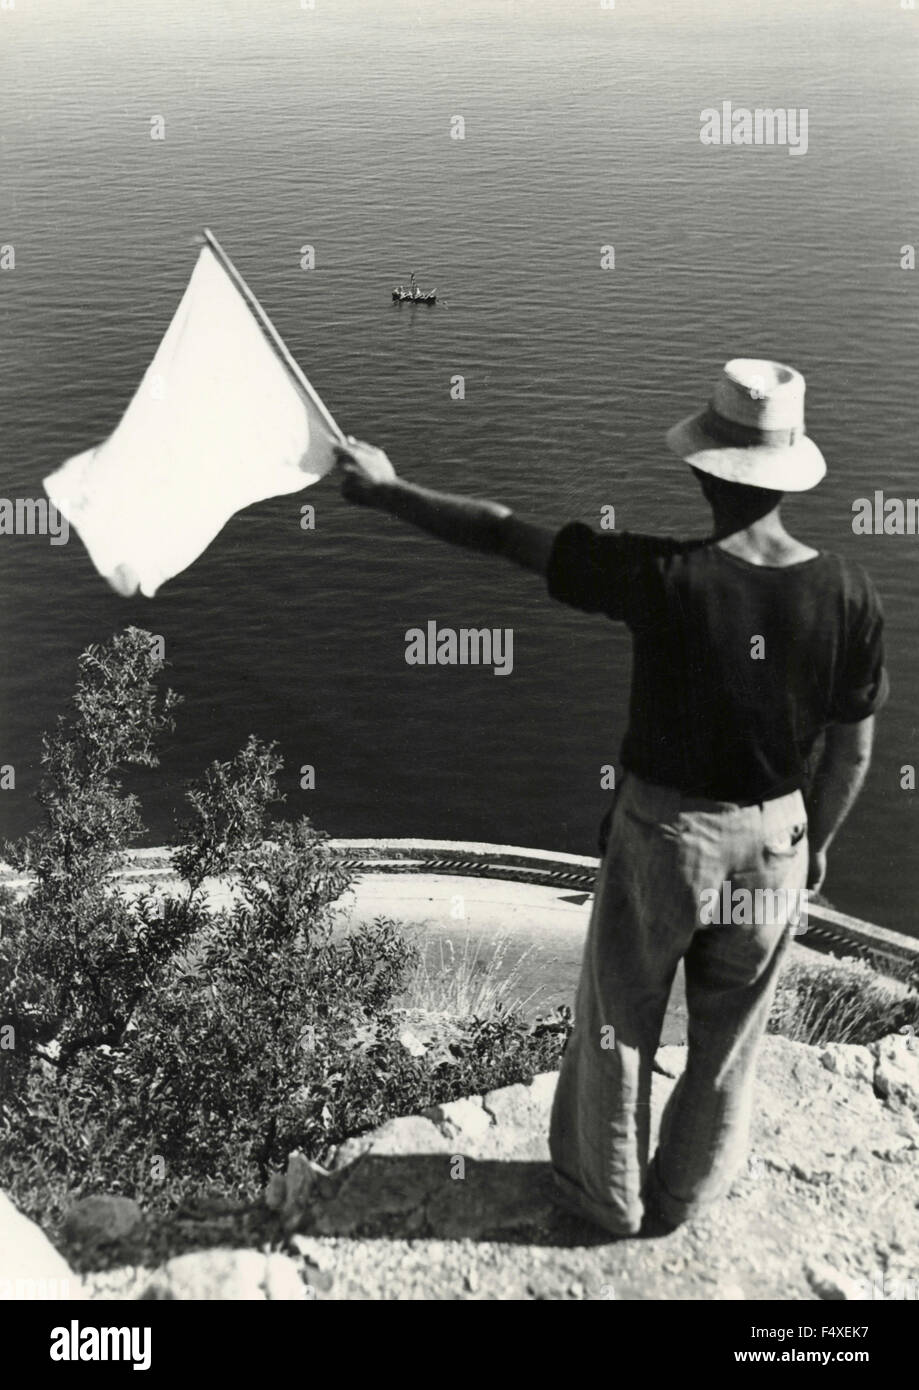 A man with a flag indicates the sighting while fishing for swordfish, Calabria, Italy - Stock Image